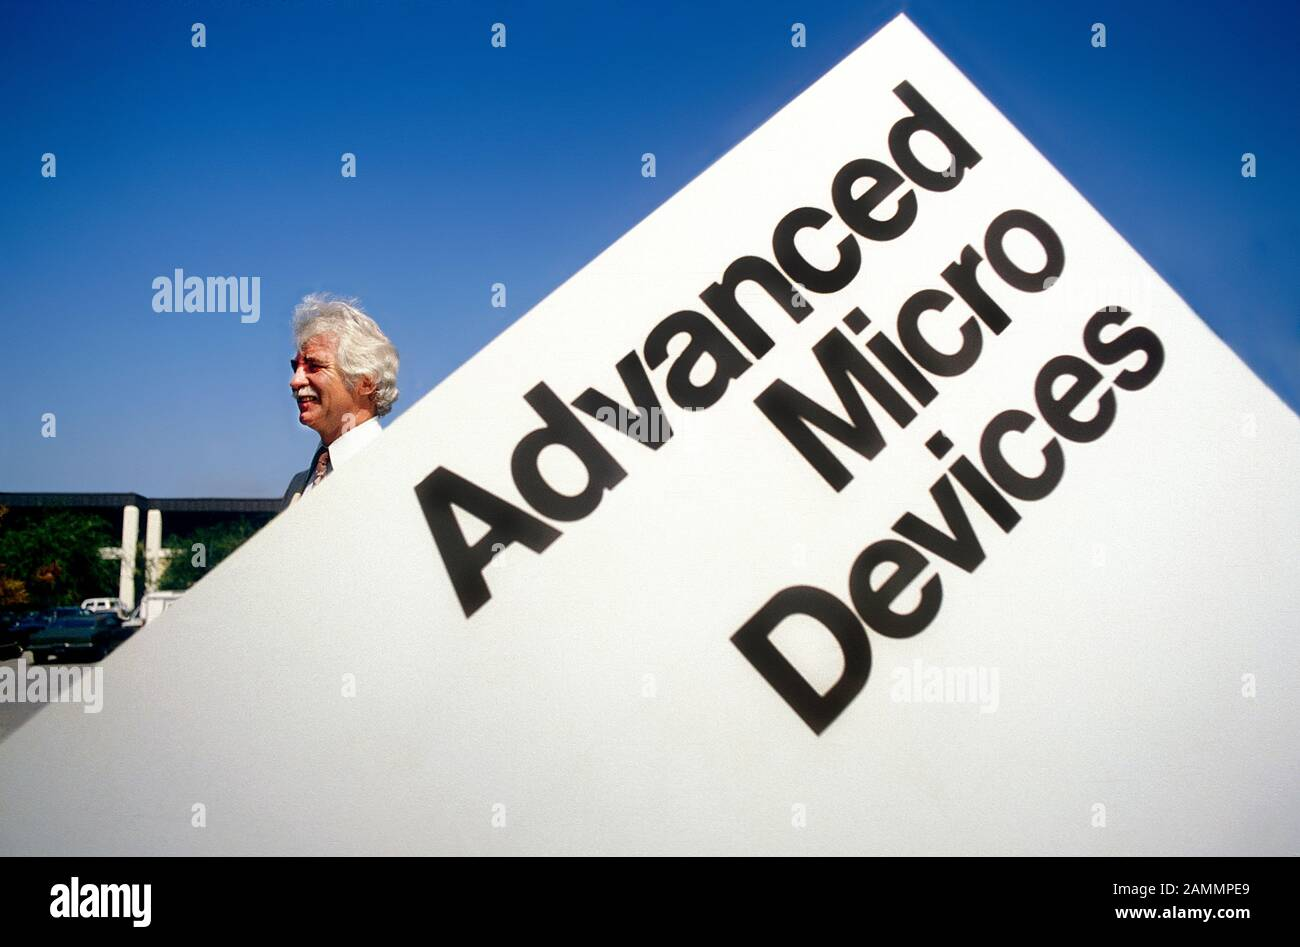 Advanced Micro Devices High Resolution Stock Photography And Images Alamy